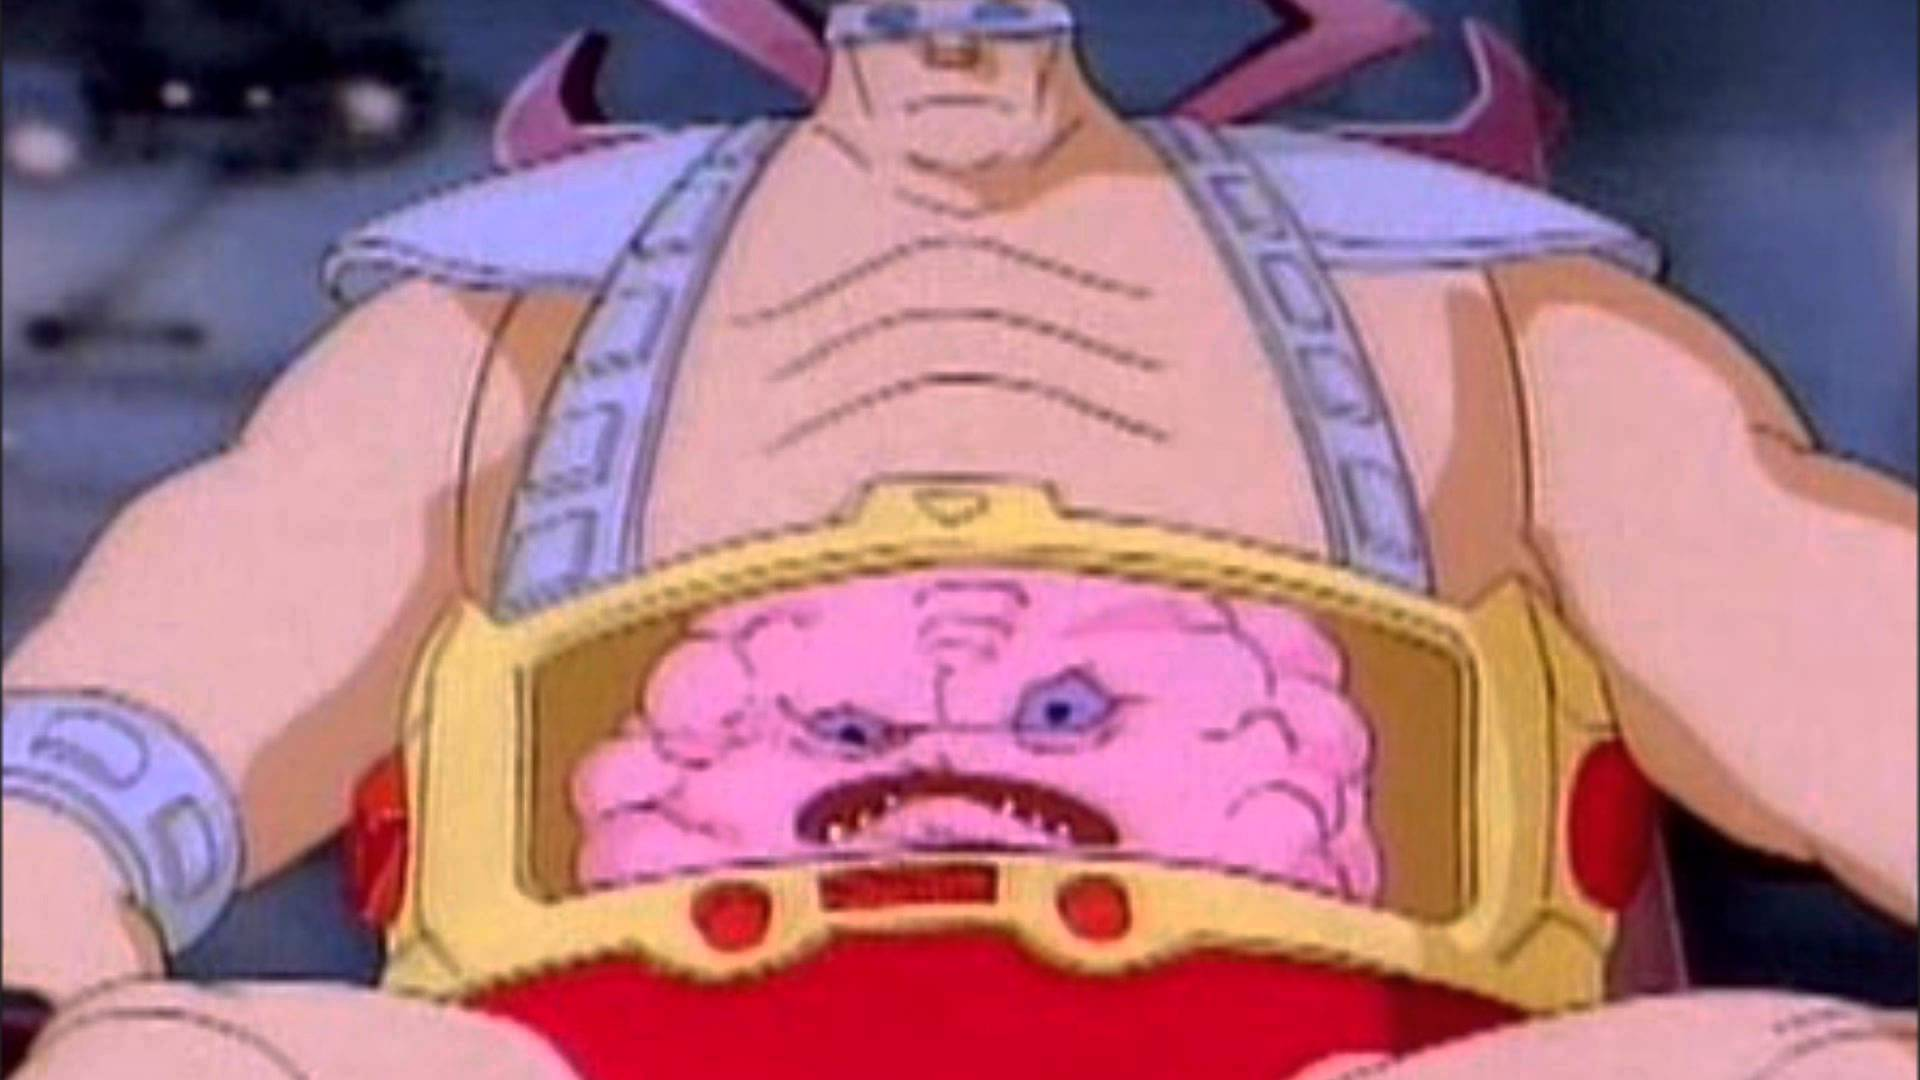 Krang To Arrive In Teenage Mutant Ninja Turtles Sequel Bloody Disgusting